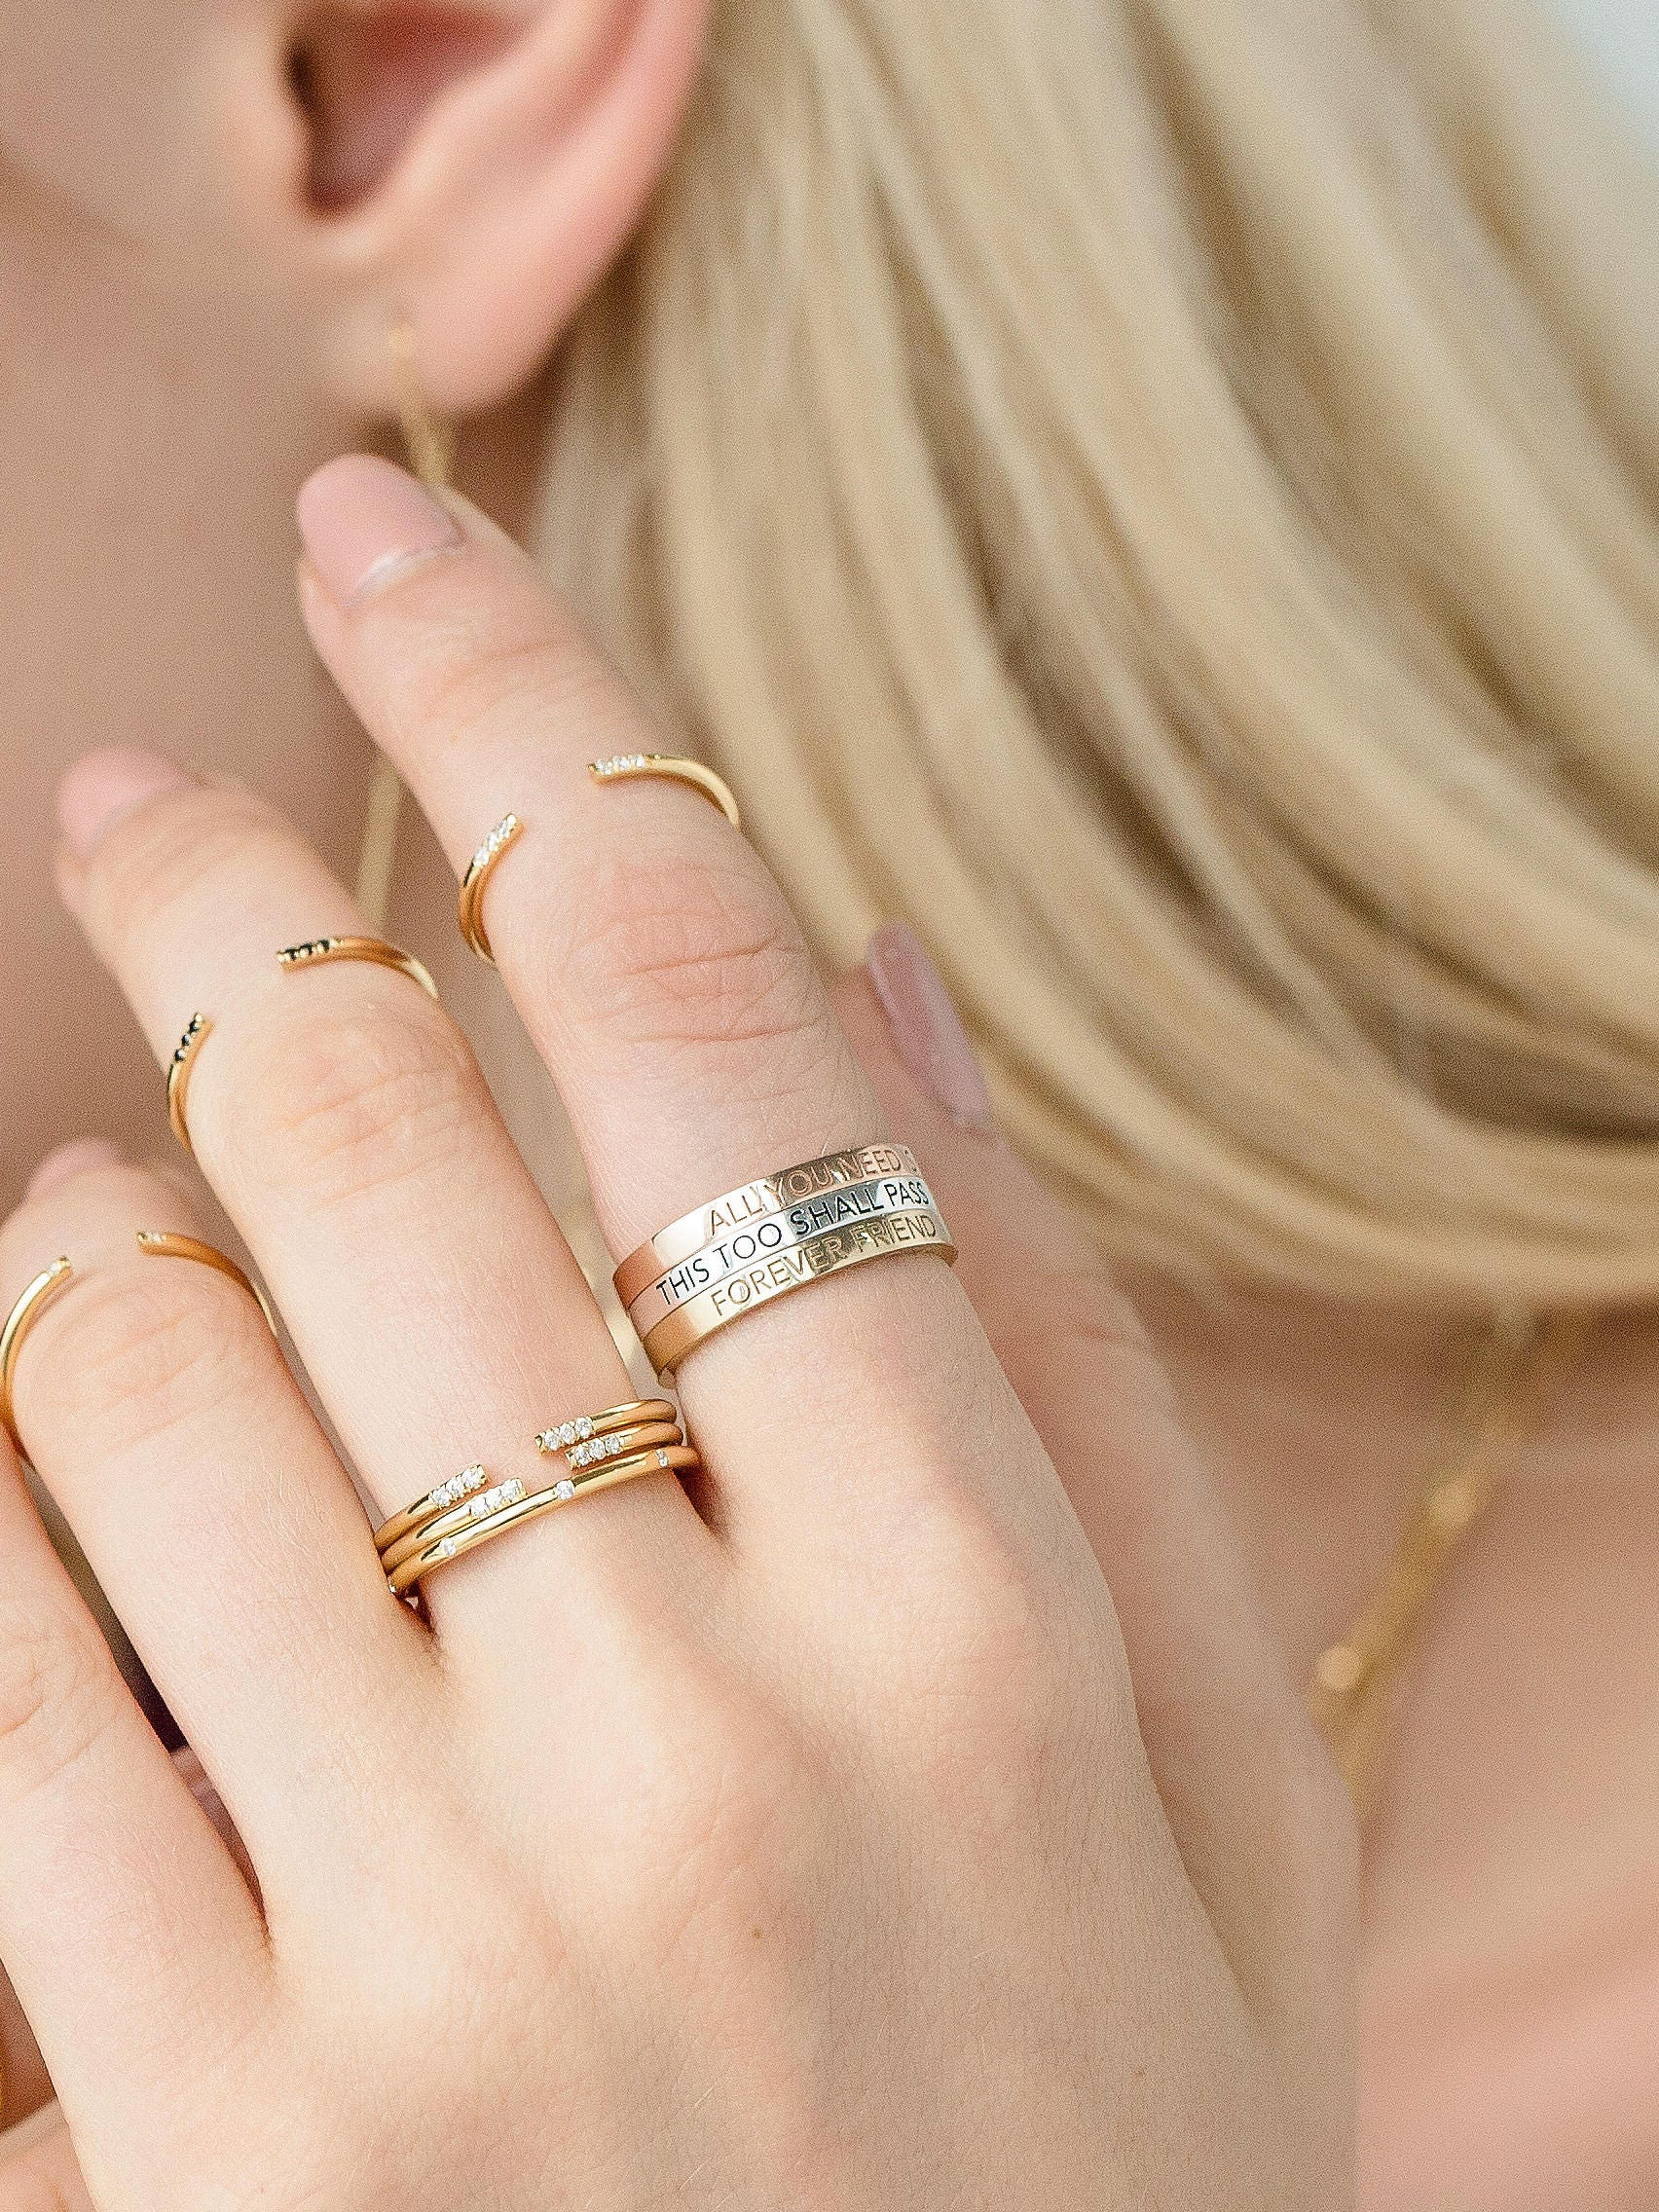 jewels claire a layering blog with bridal june entwine layered diamond rose of dot bride infini gold stacking our wears aristides rings ring hello fine perle including